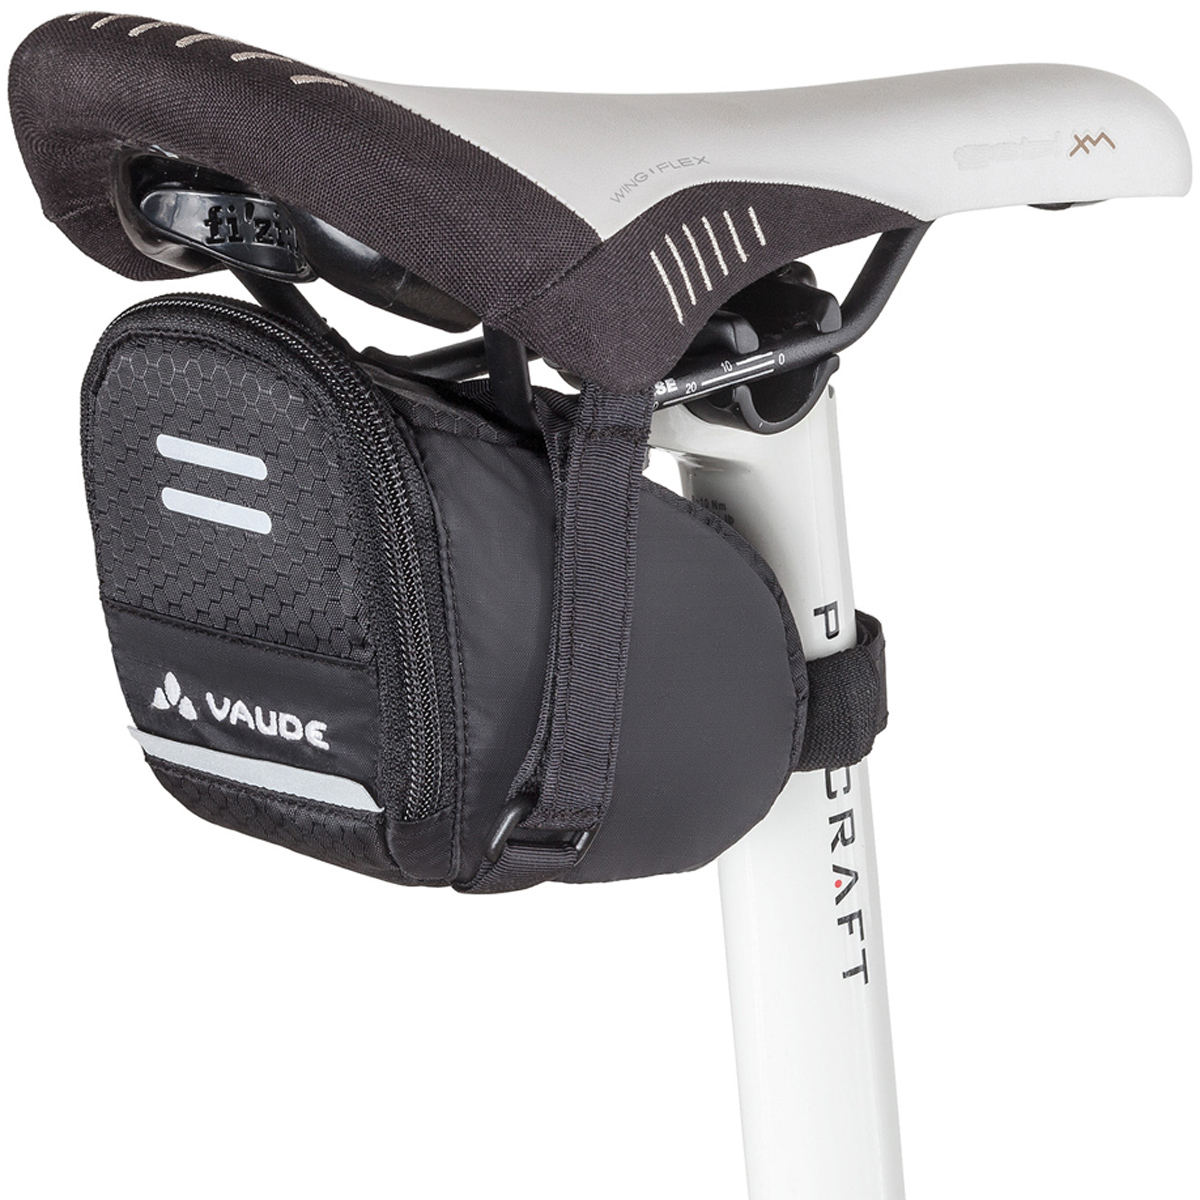 VAUDE Race Light L Sadeltaske, black (2020) | Saddle bags